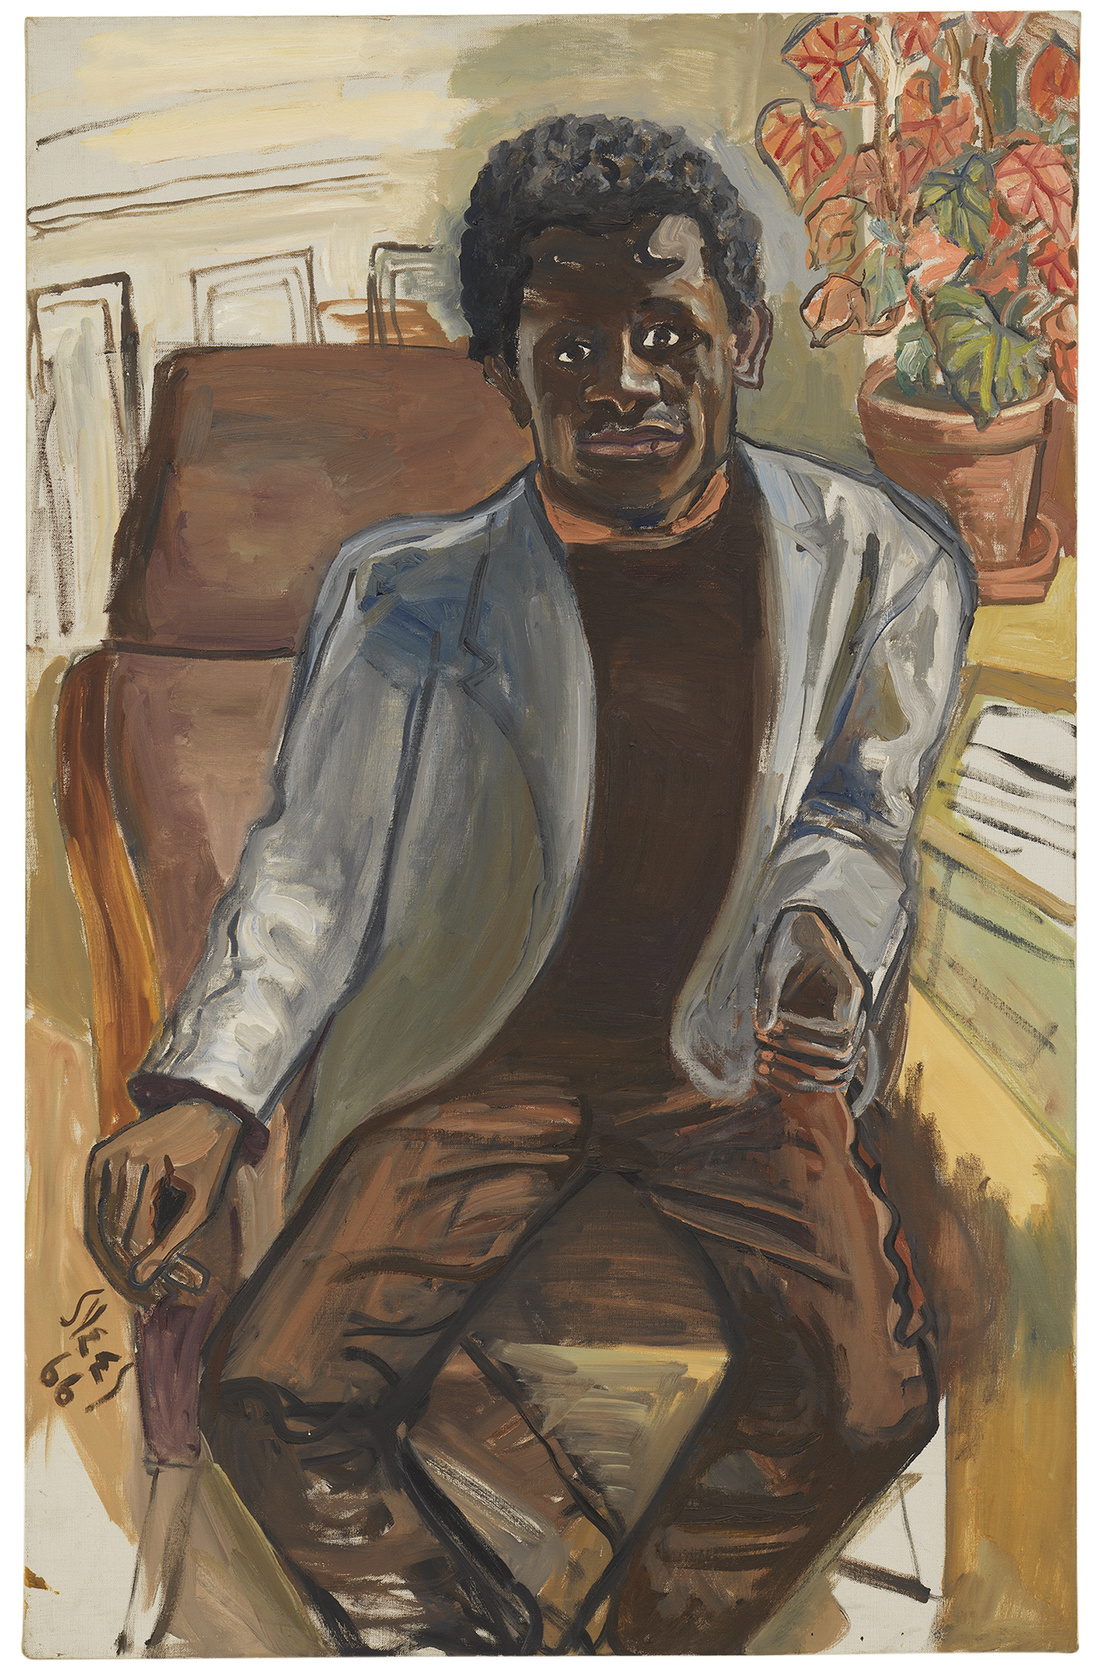 Alice Neel, Black Man, 1966. © The Estate of Alice Neel. Courtesy David Zwirner, New York/London and Victoria Miro, London.